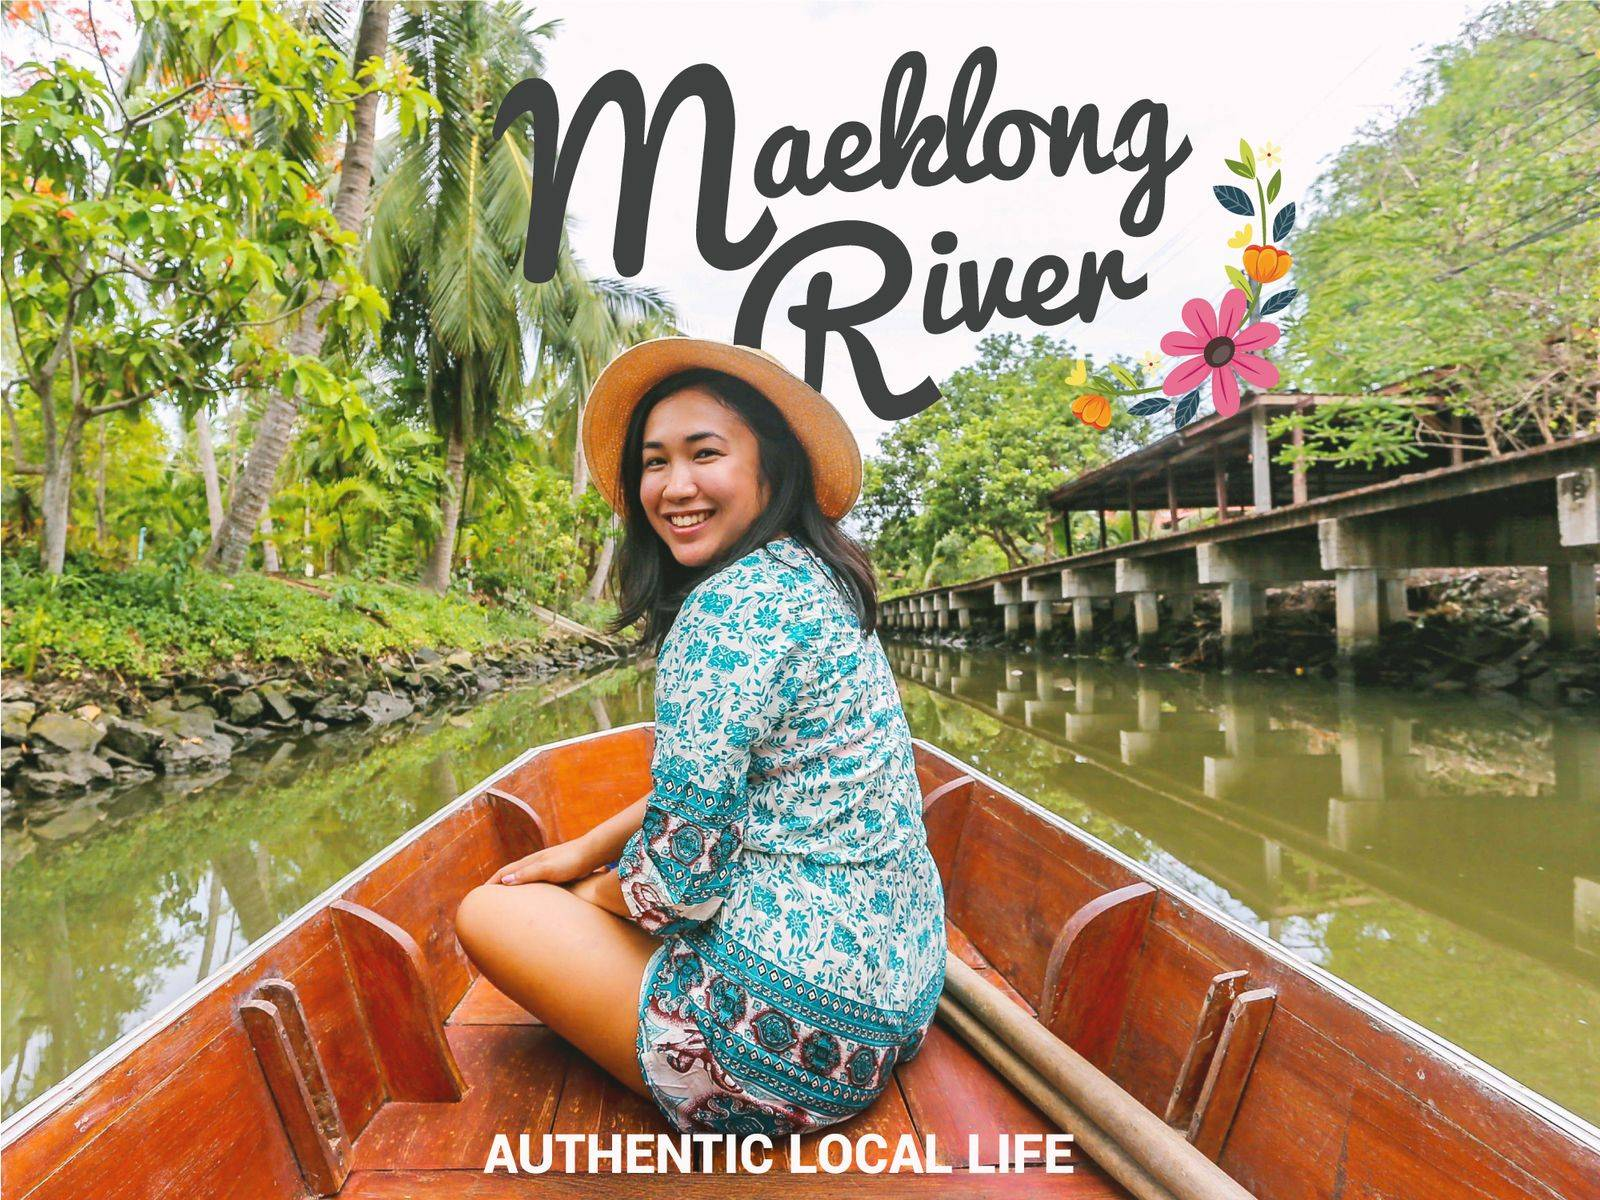 Experience Authentic Local Life along the Maeklong River